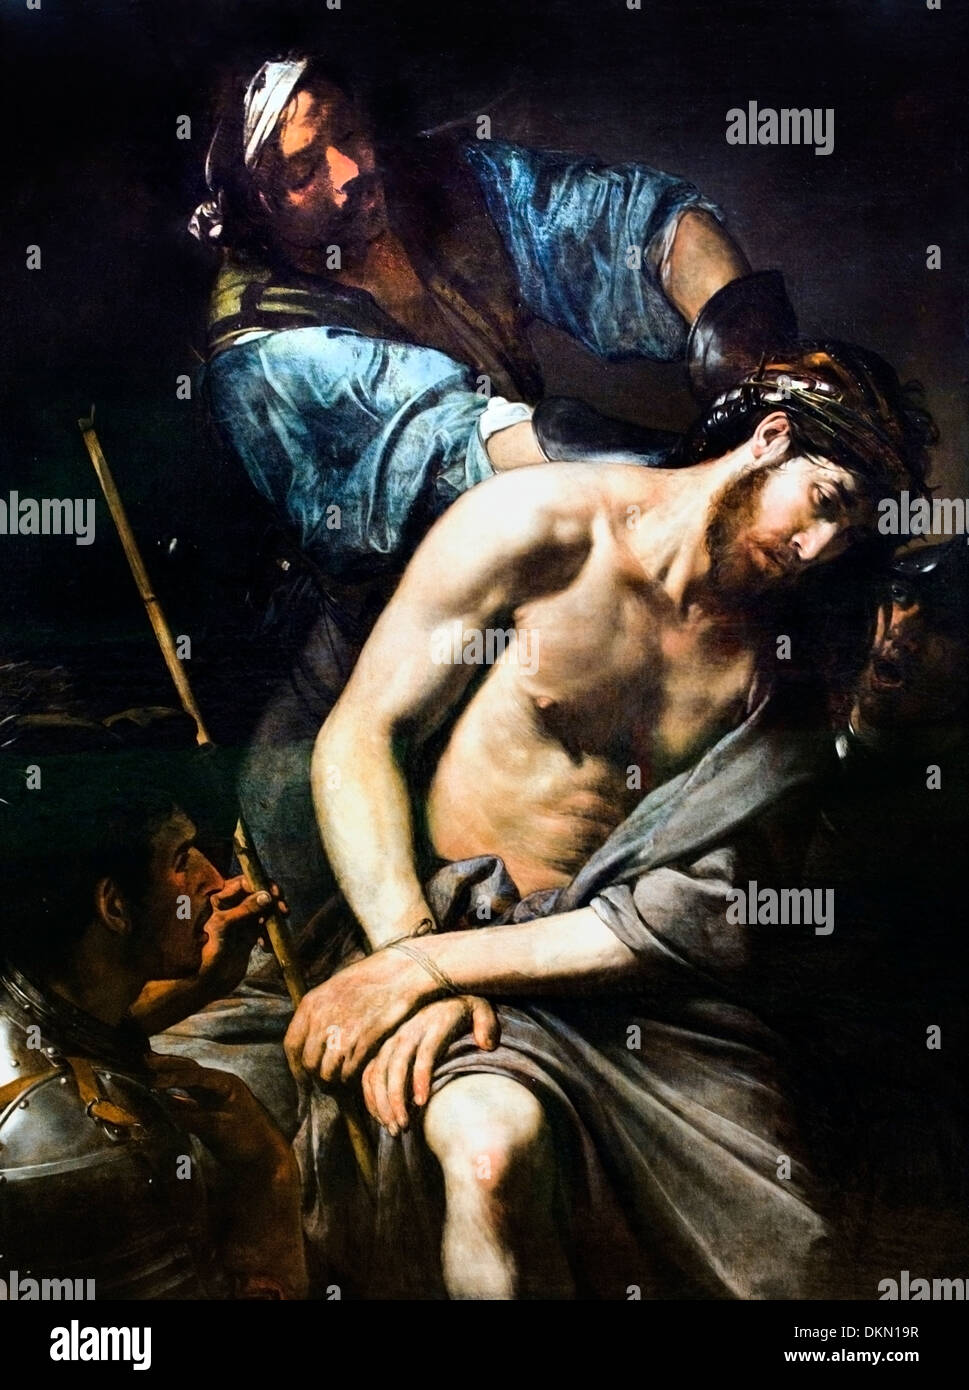 Jean Valentin de Boulogne (1591 - 1632), painting The Crowning with Thorns 1570 France French - Stock Image